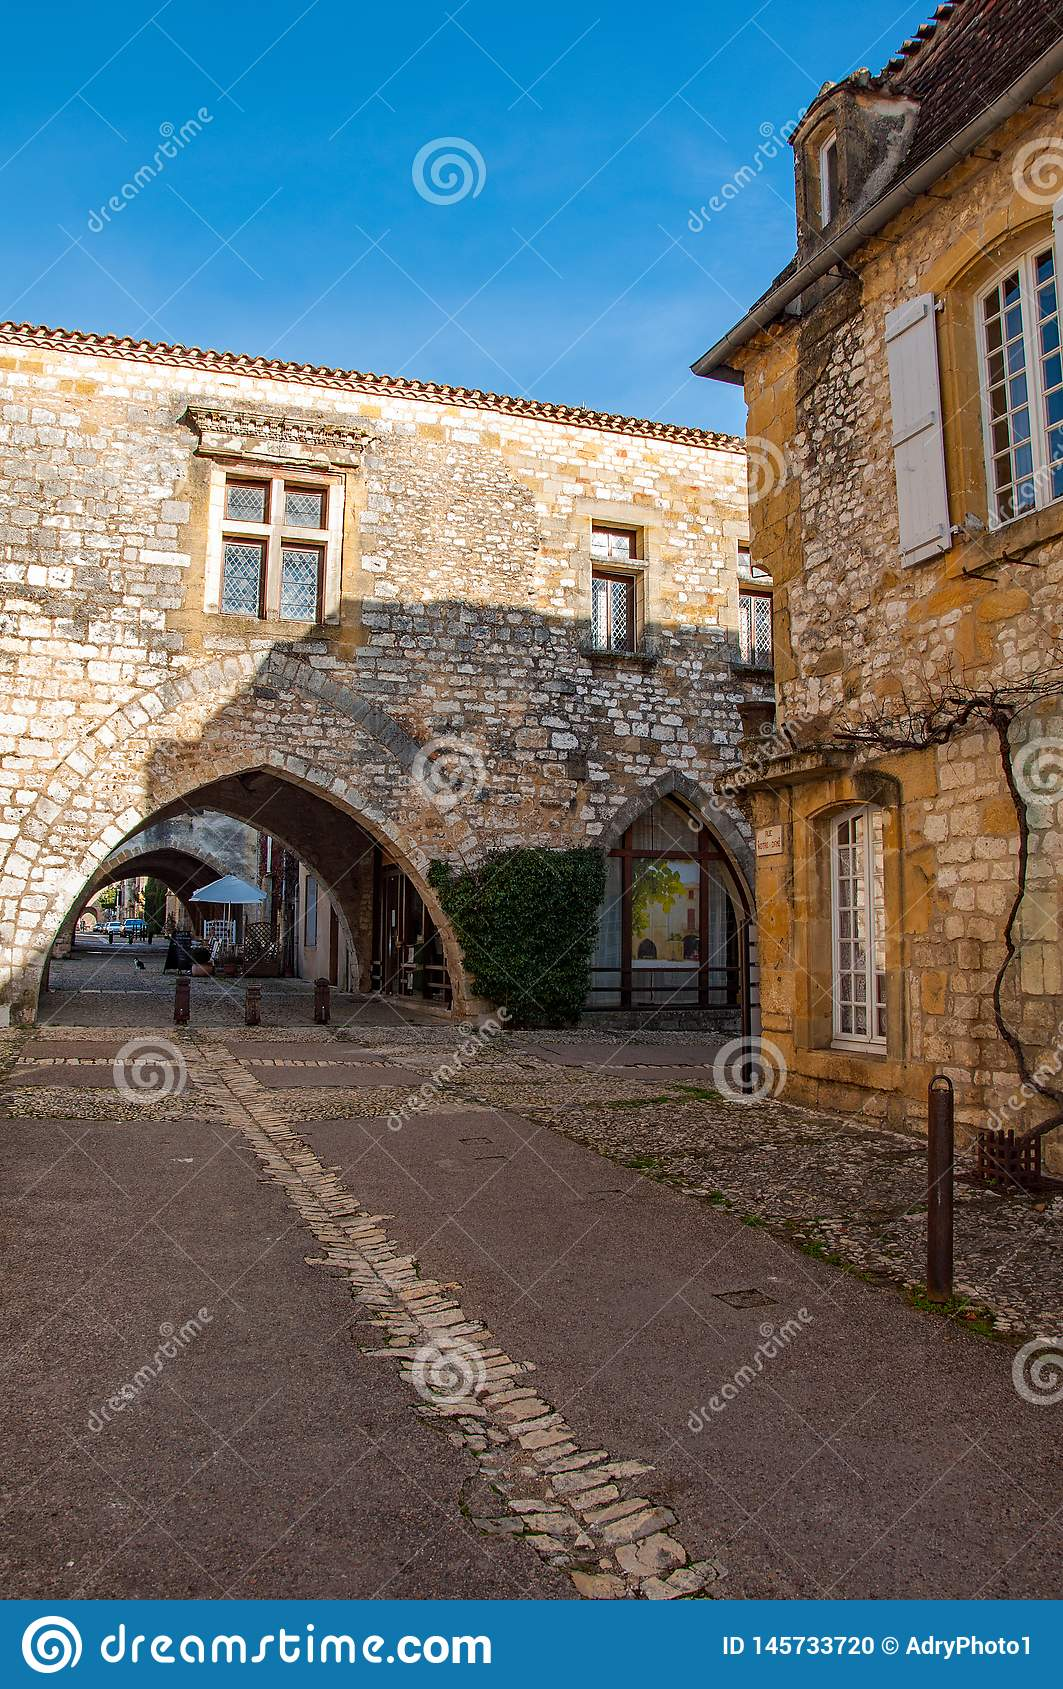 The village of Monpazier, in the Dordogne-Périgord region, France. Medieval village with arcades and typical square